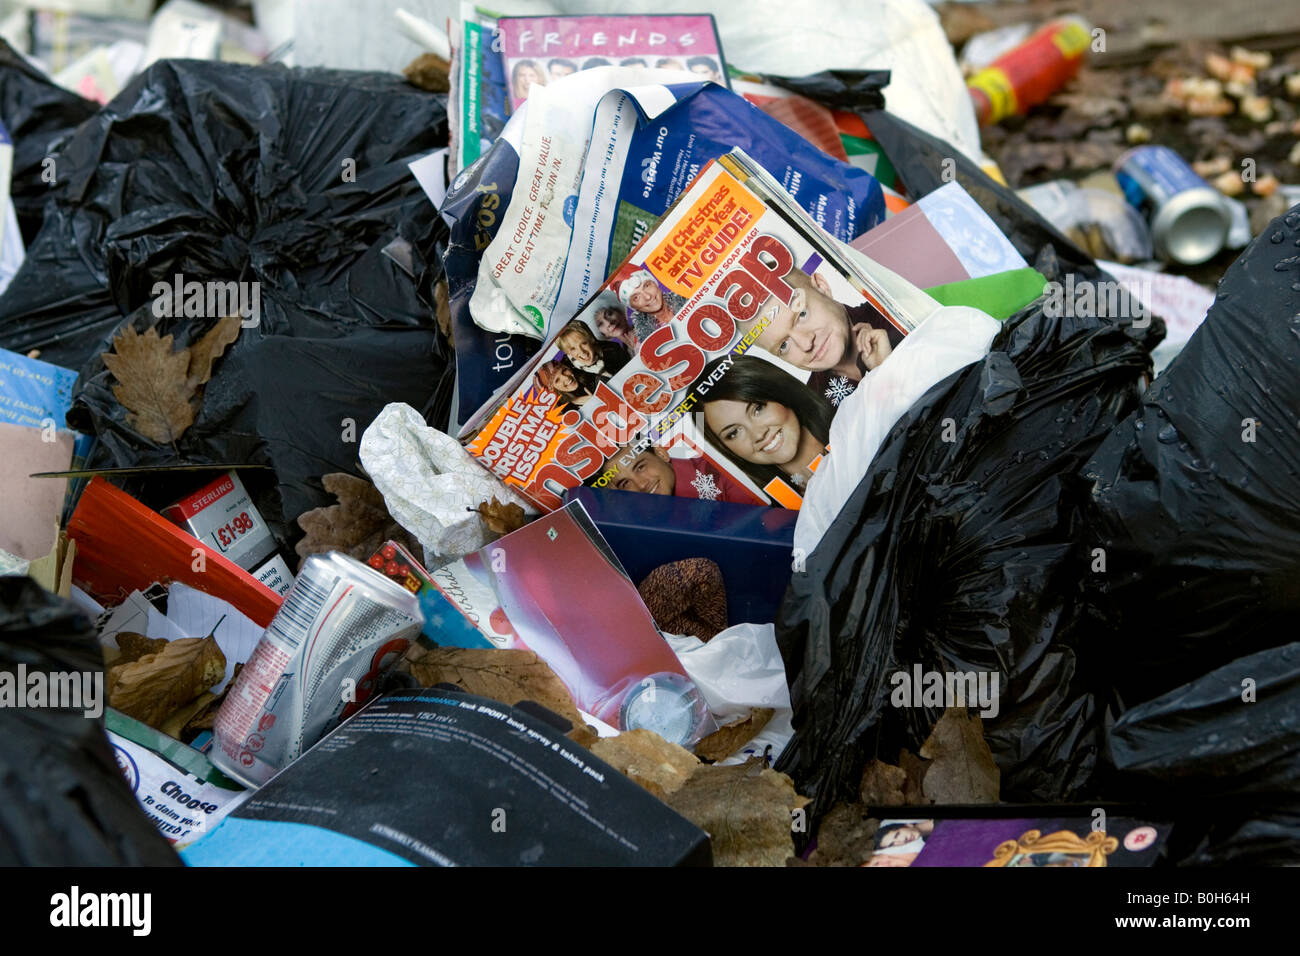 Illegally dumped house garbage in a woodland forest outside Medmenham in Buckinghamshire, England. Stock Photo